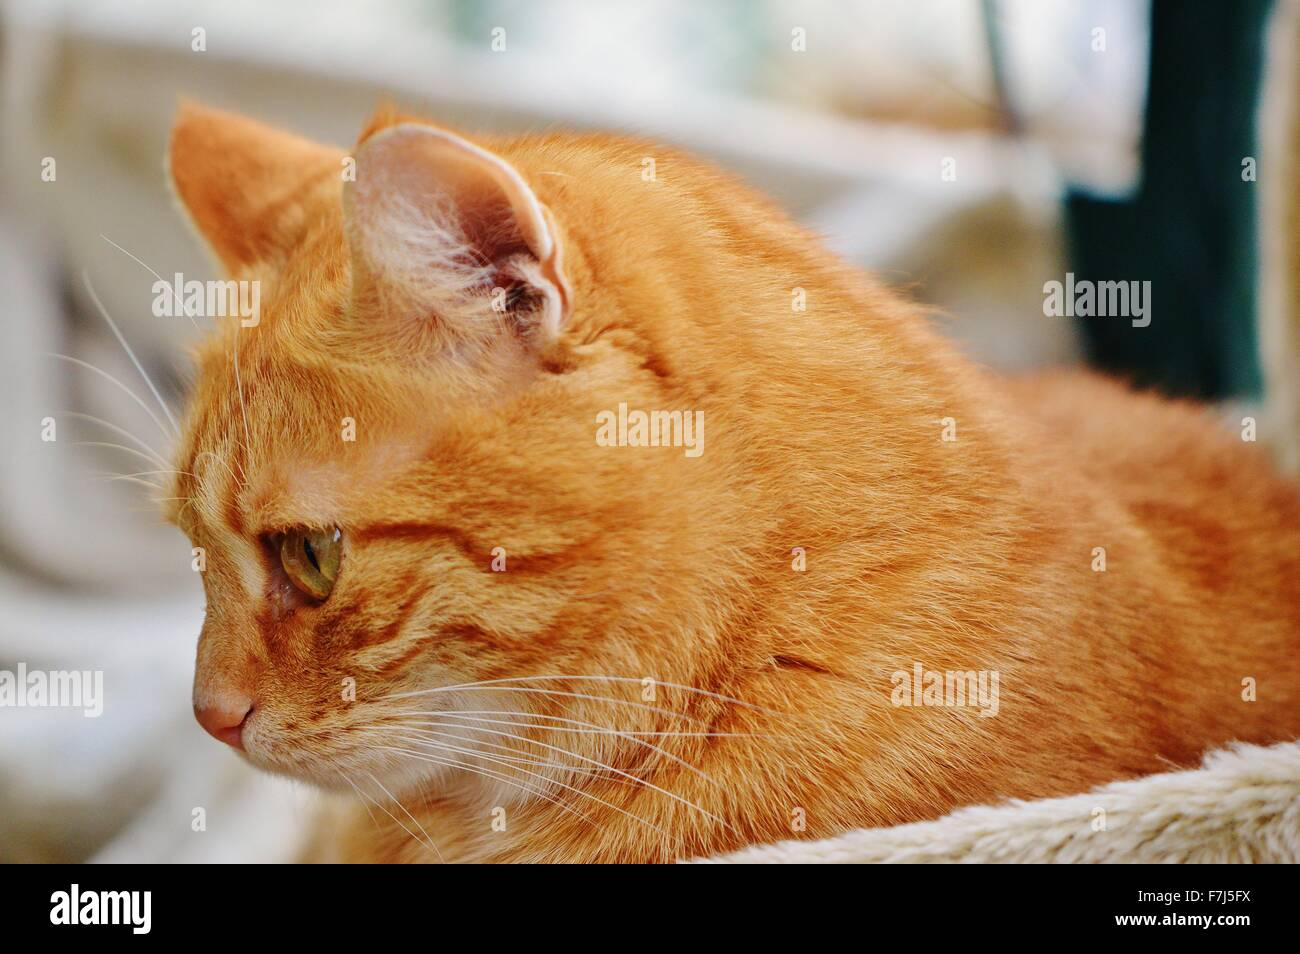 Side view of a ginger tabby cat - Stock Image